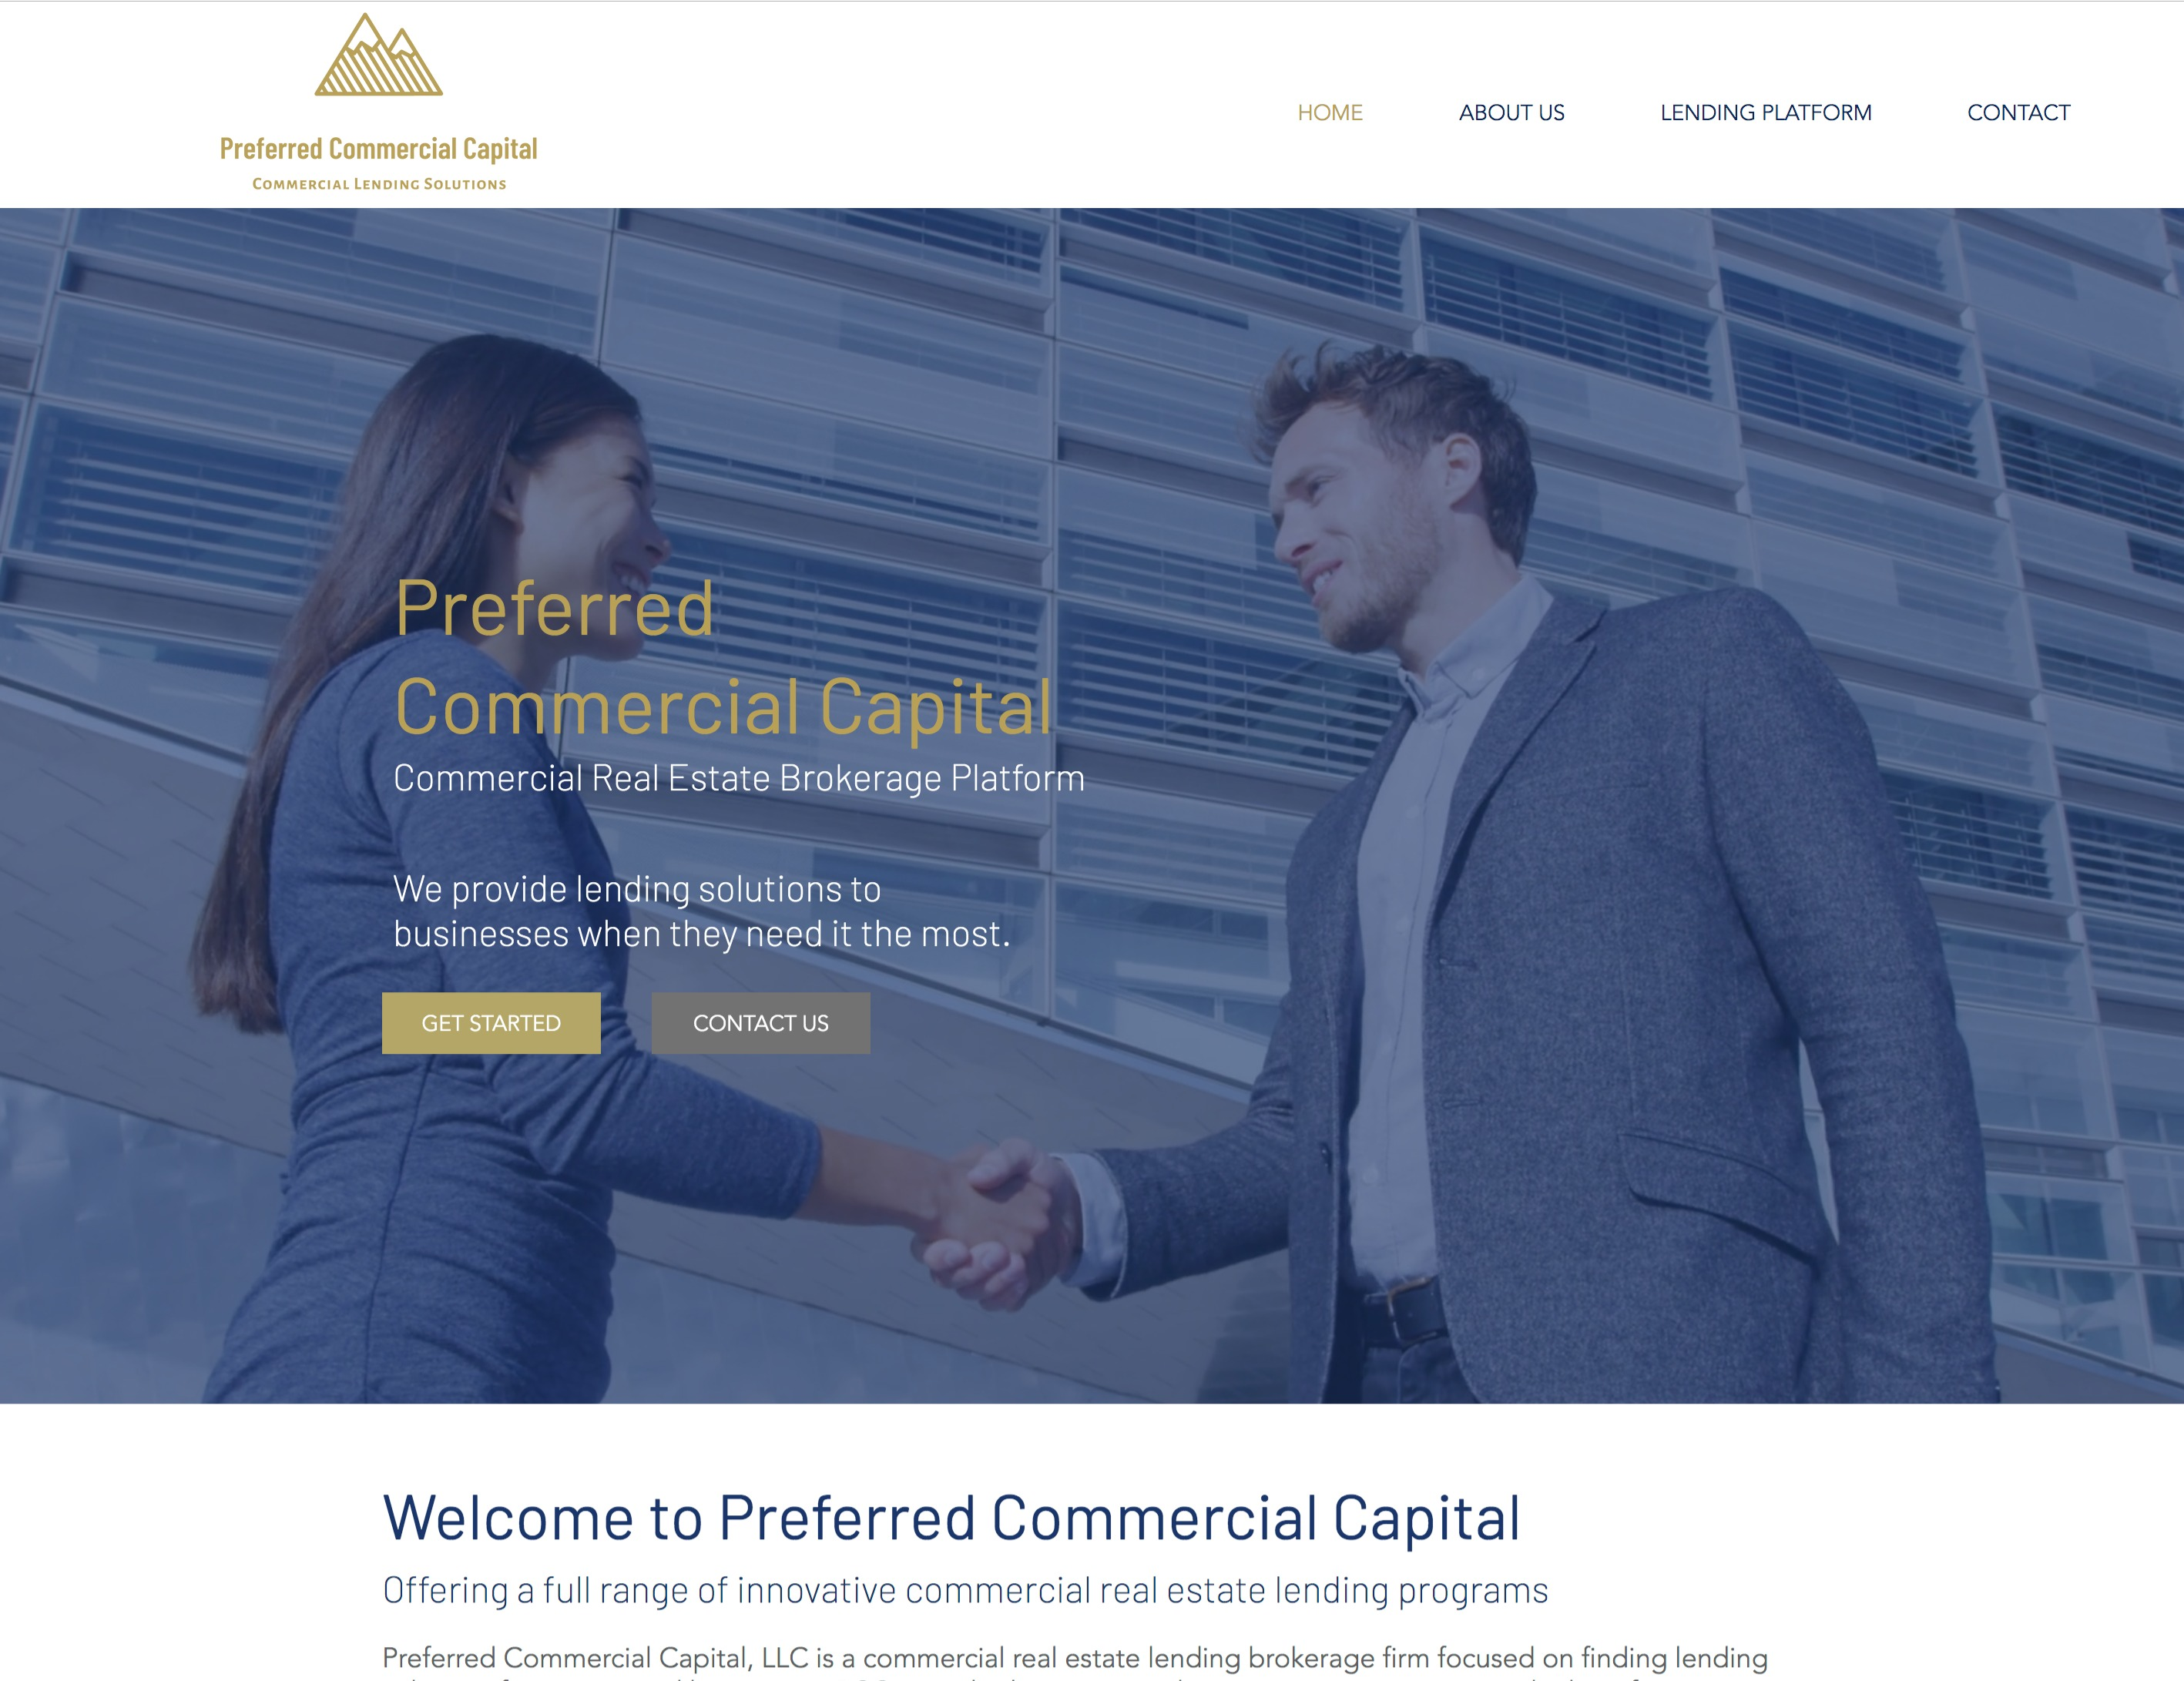 Preferred Commercial Capital